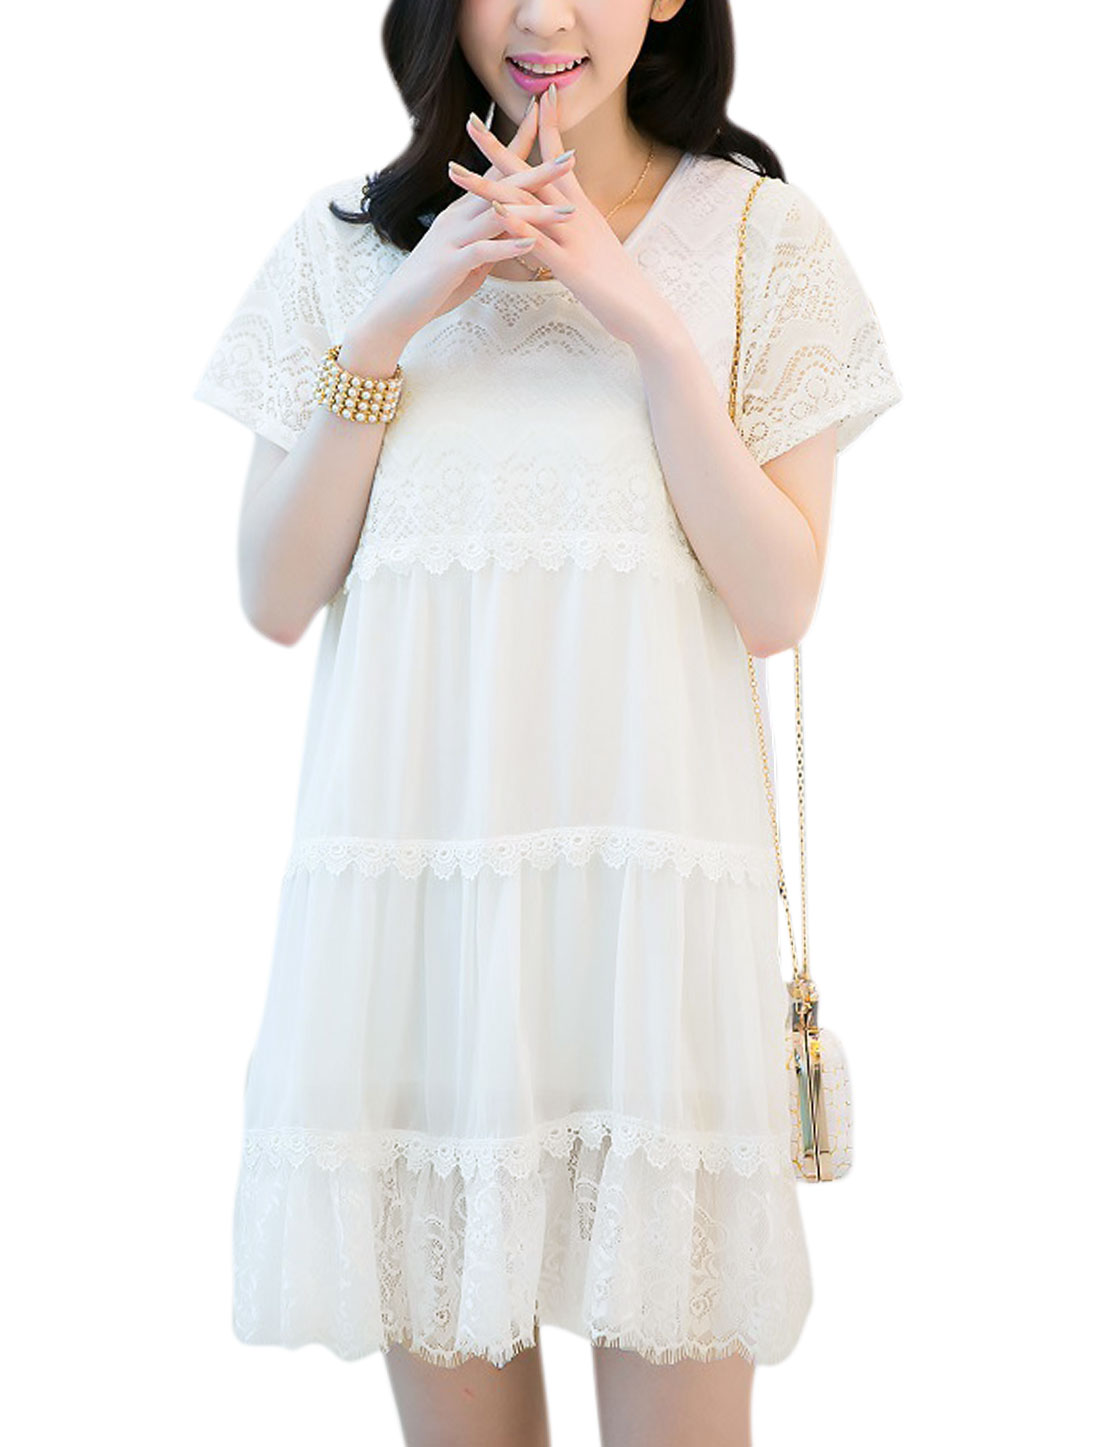 Lady Sweet Short Sleeve Mesh Patch Flouncing Hem Chiffon Dress White S